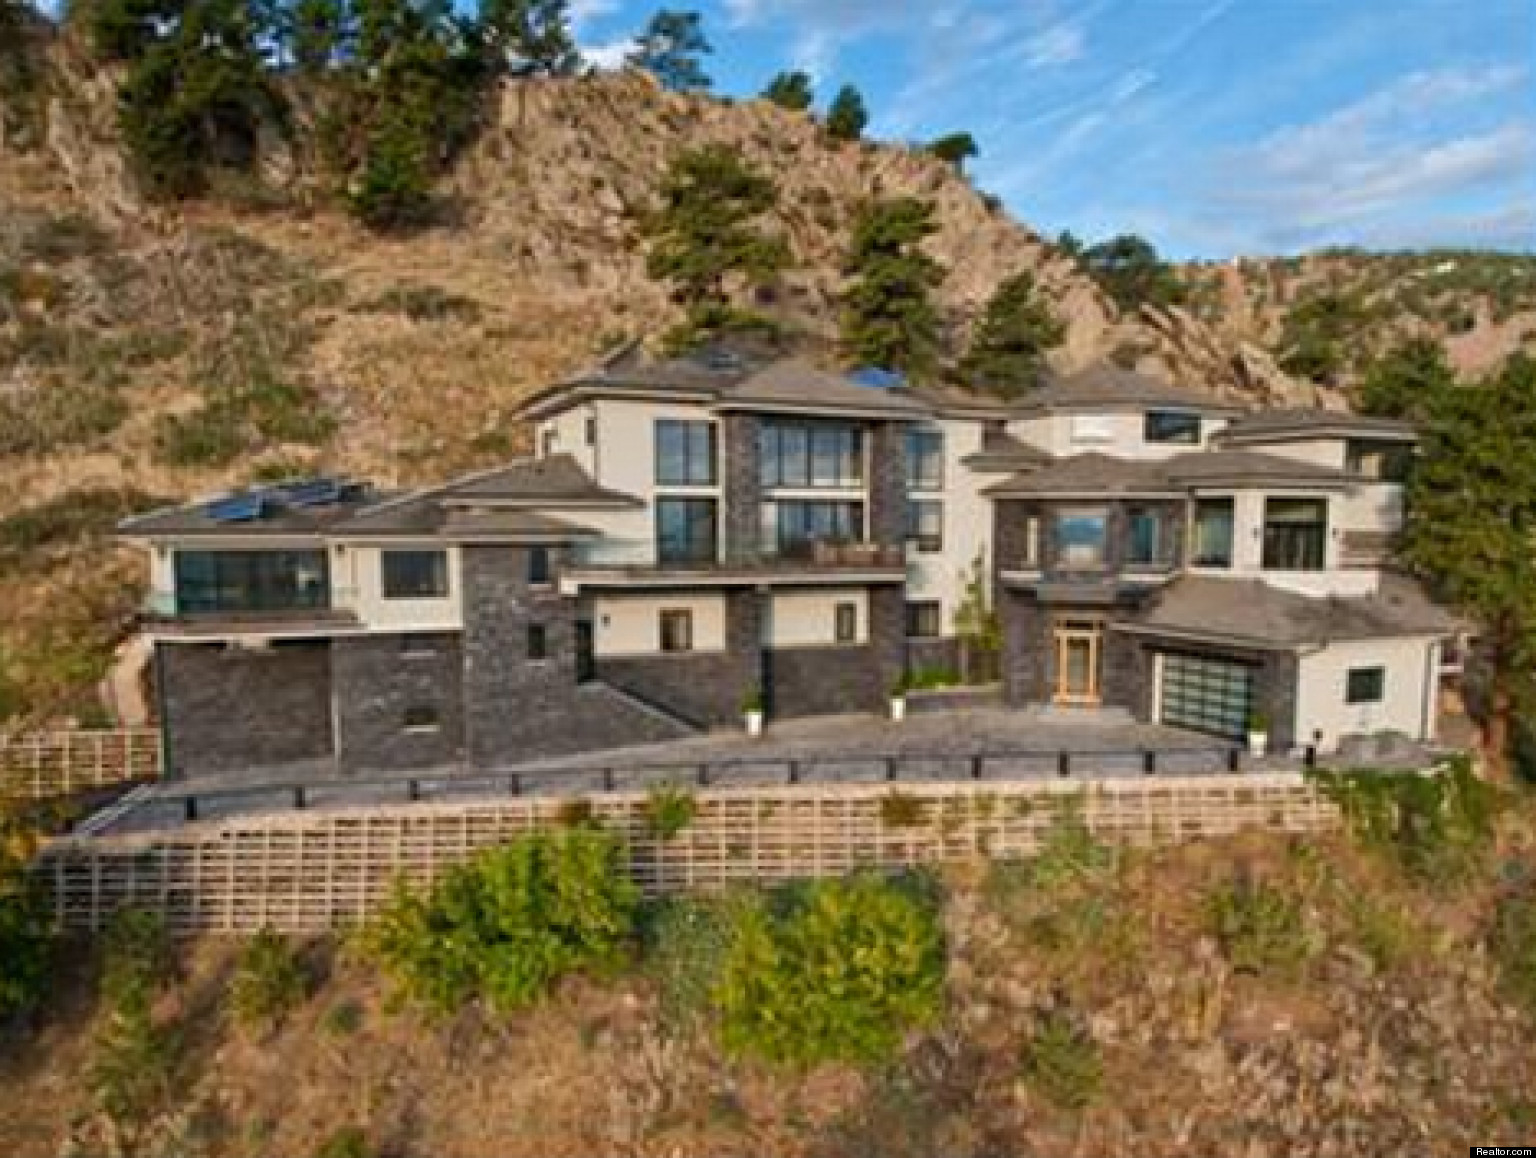 Top 10 most expensive homes in boulder colo in 2012 for Most luxurious house